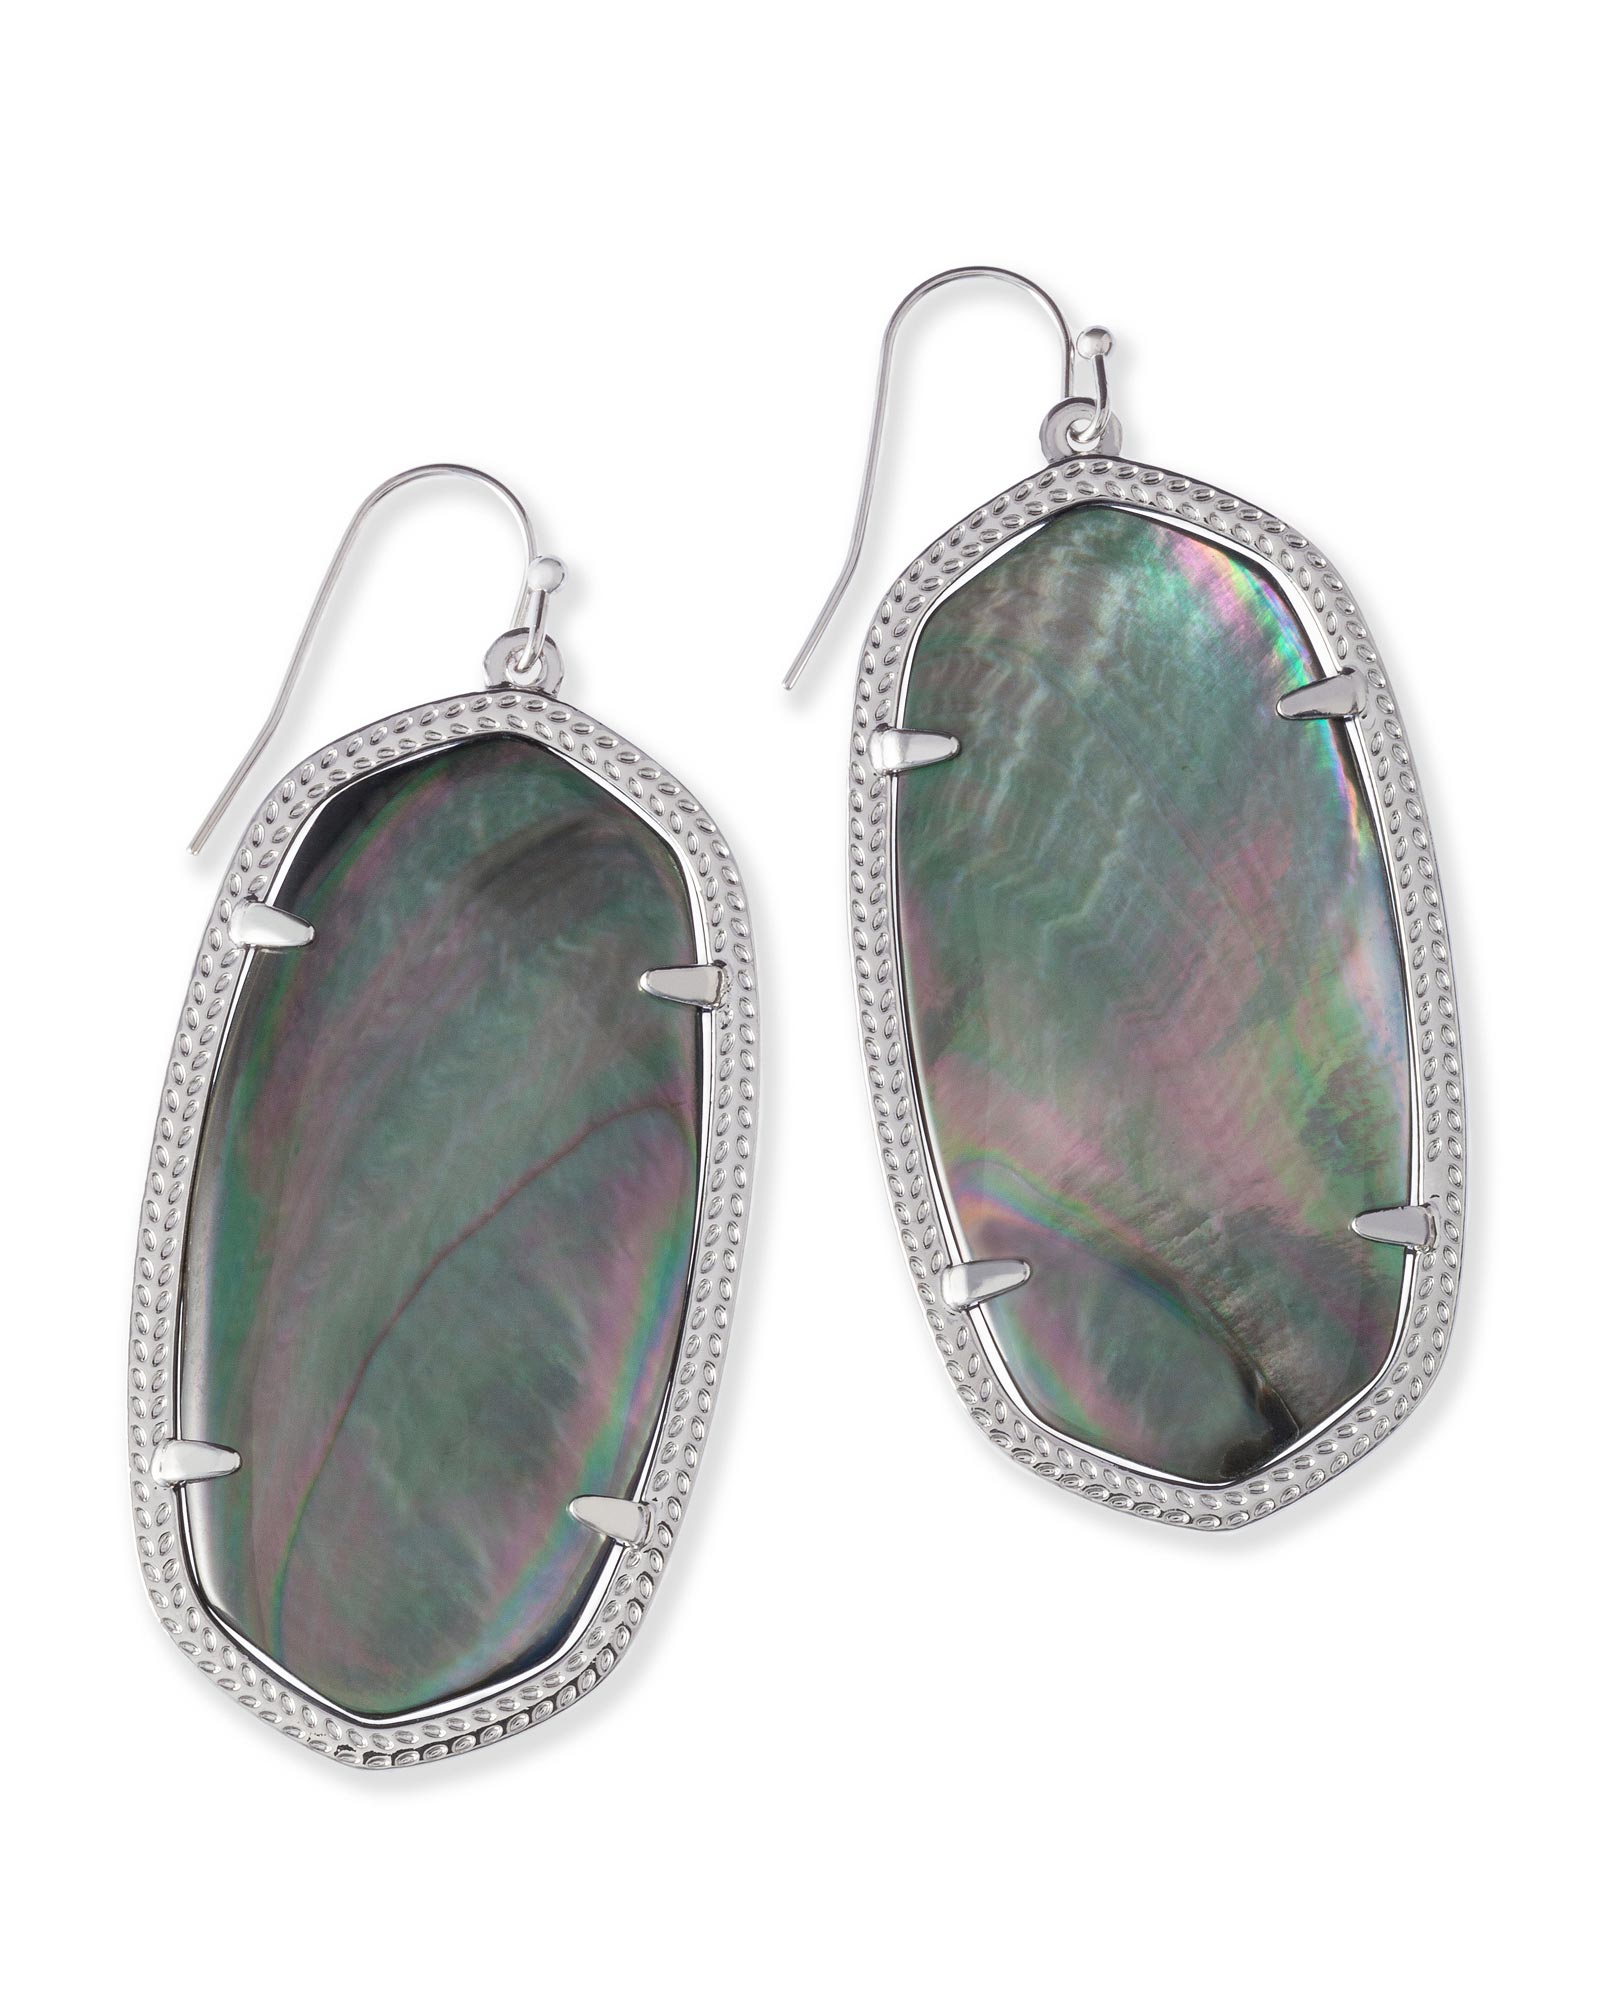 KENDRA SCOTT DANIELLE EARRING IN RHODIUM